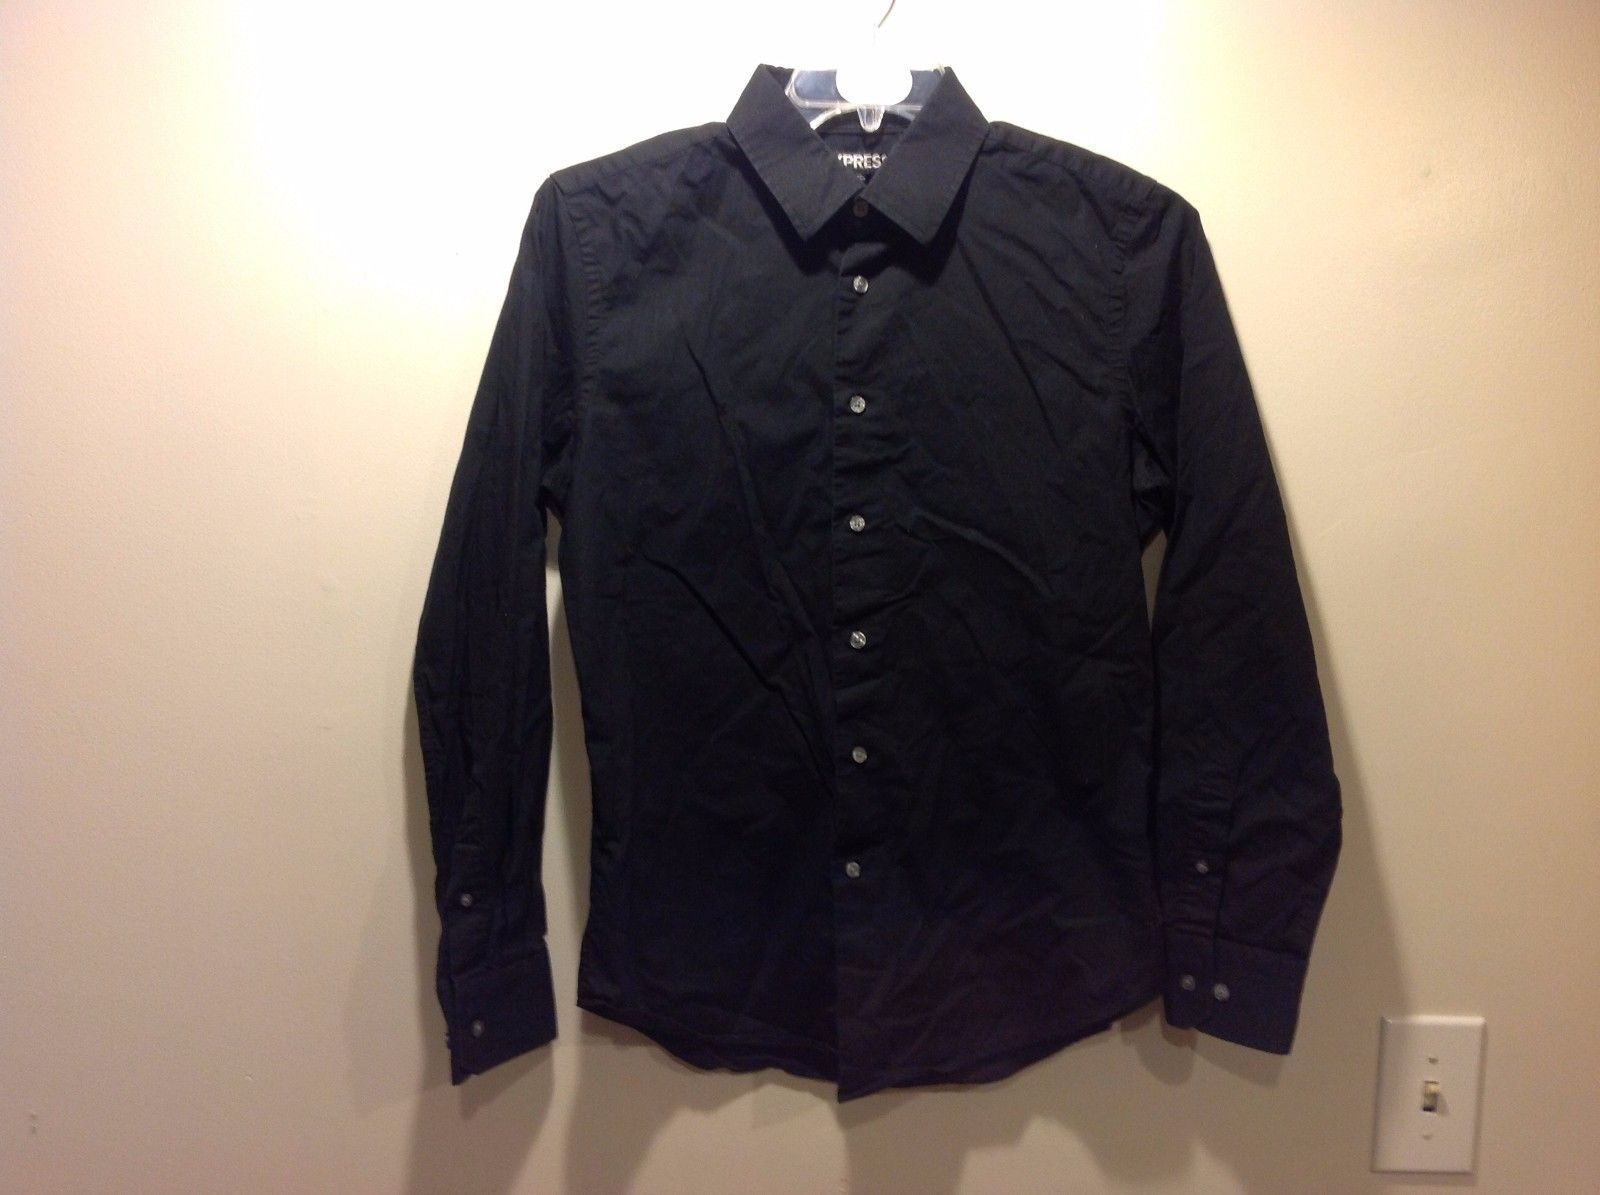 Nice black button up shirt by express for men sz m modern for Nice mens button up shirts